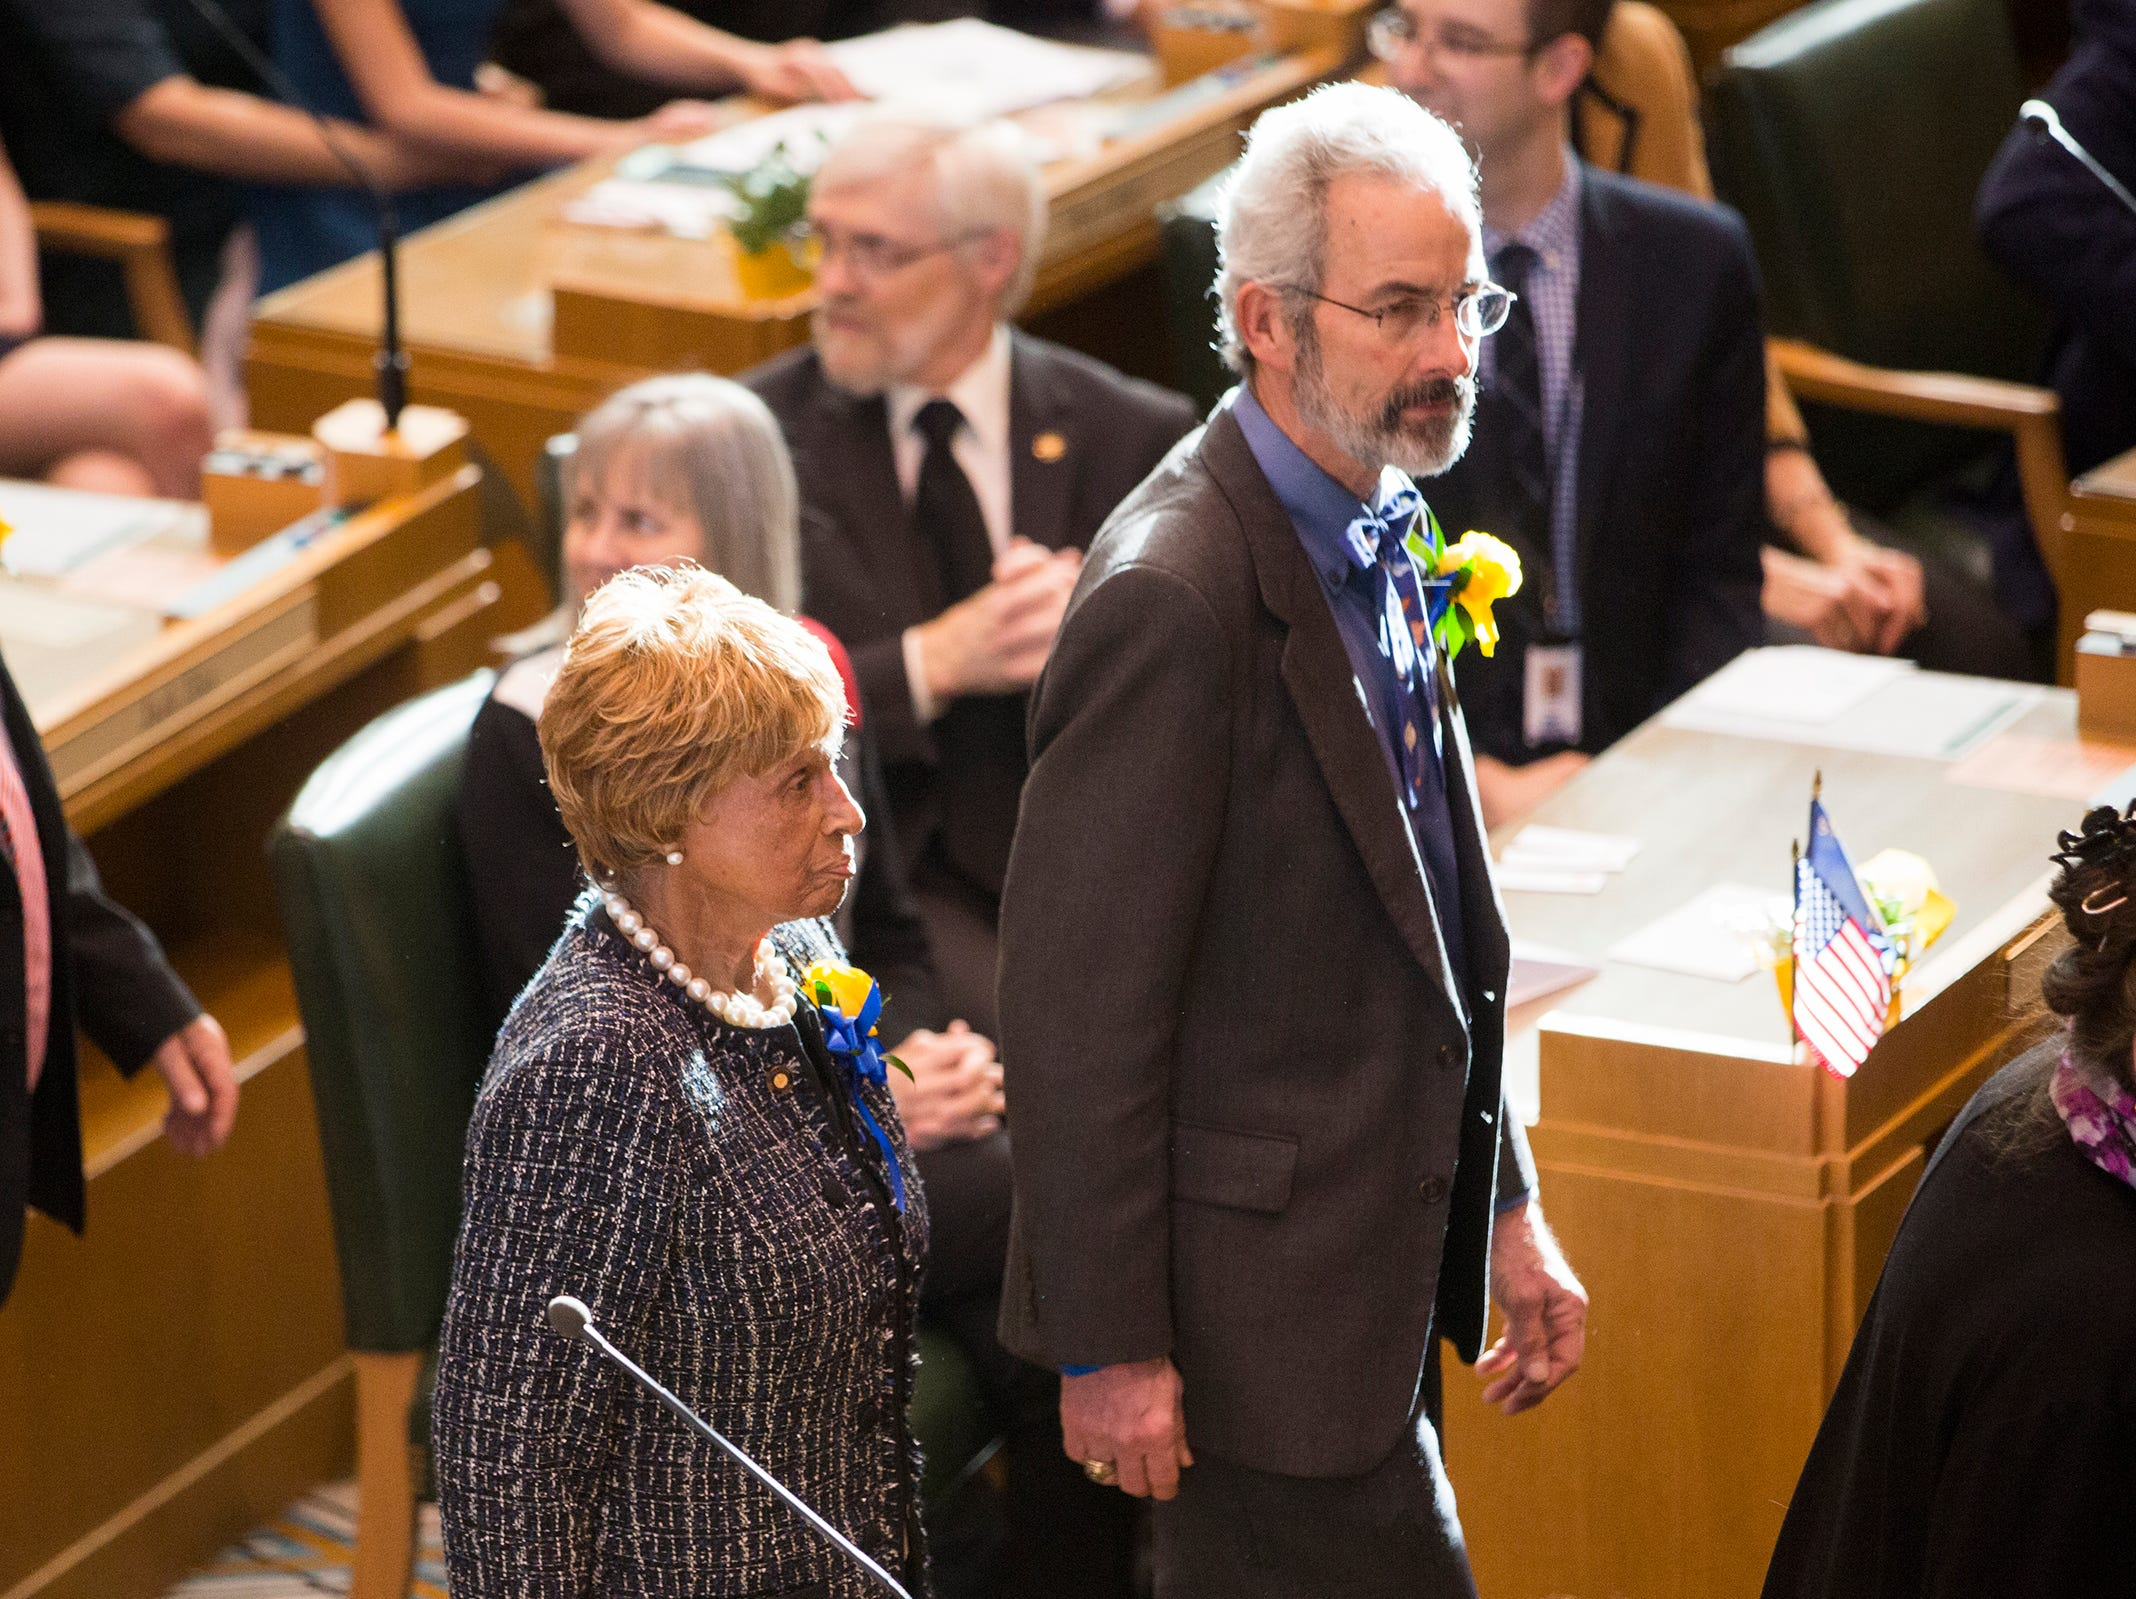 Sen. Jackie Winters, R-Salem, and Sen. Floyd Prozanski, D-Eugene, walk in before Governor Kate Brown addresses the state legislature at her inauguration at the Oregon State Capitol on Jan. 14, 2019.